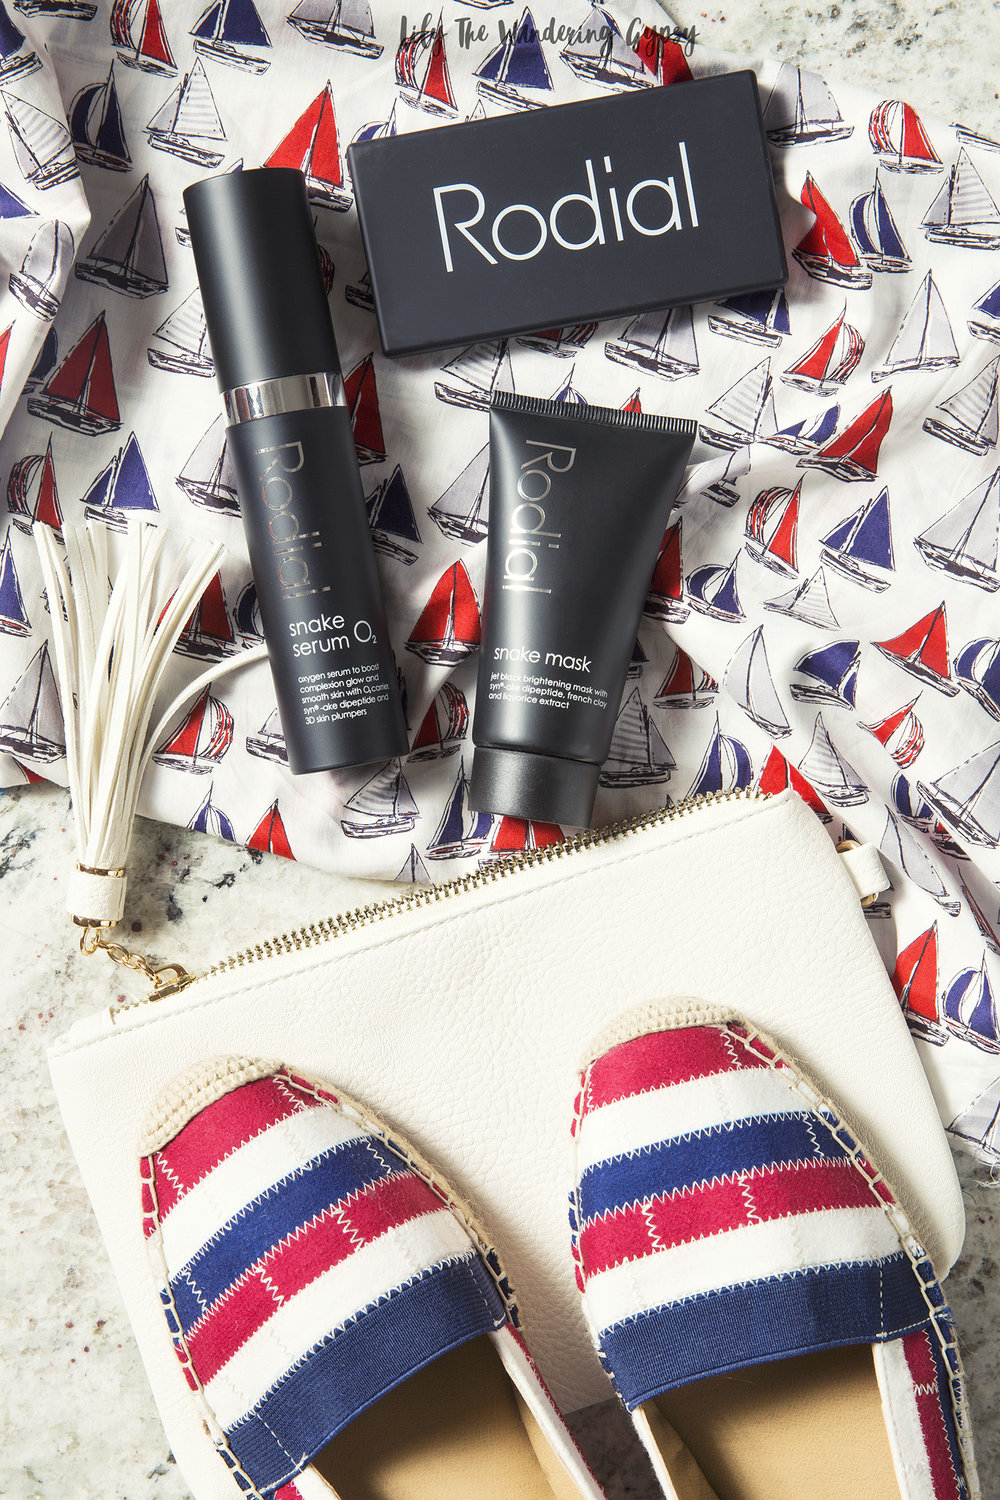 Luxury Makeup and Skincare